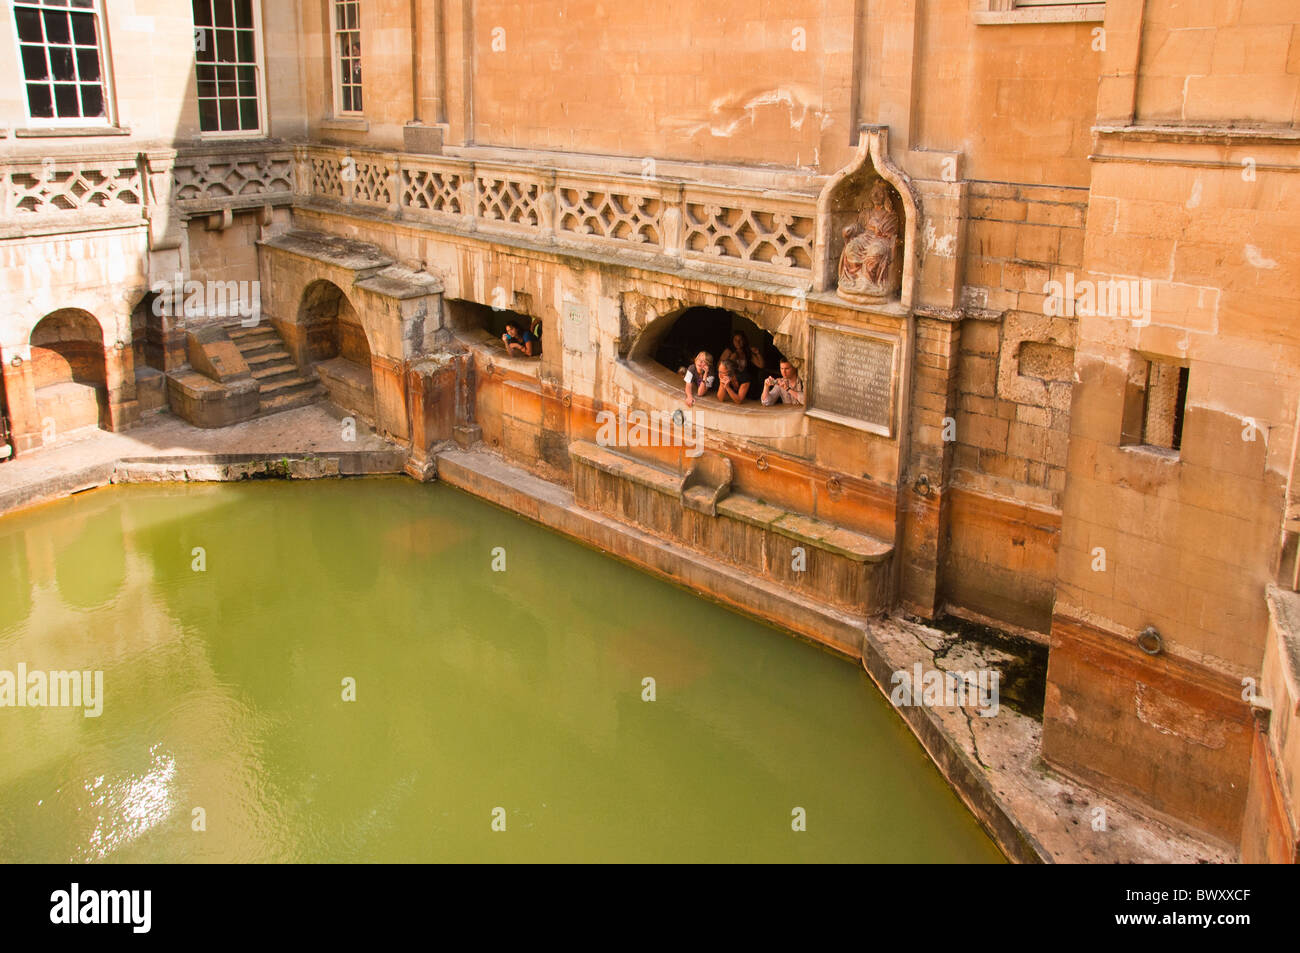 Kings Bath, Roman Baths, BATH, England UK - Stock Image